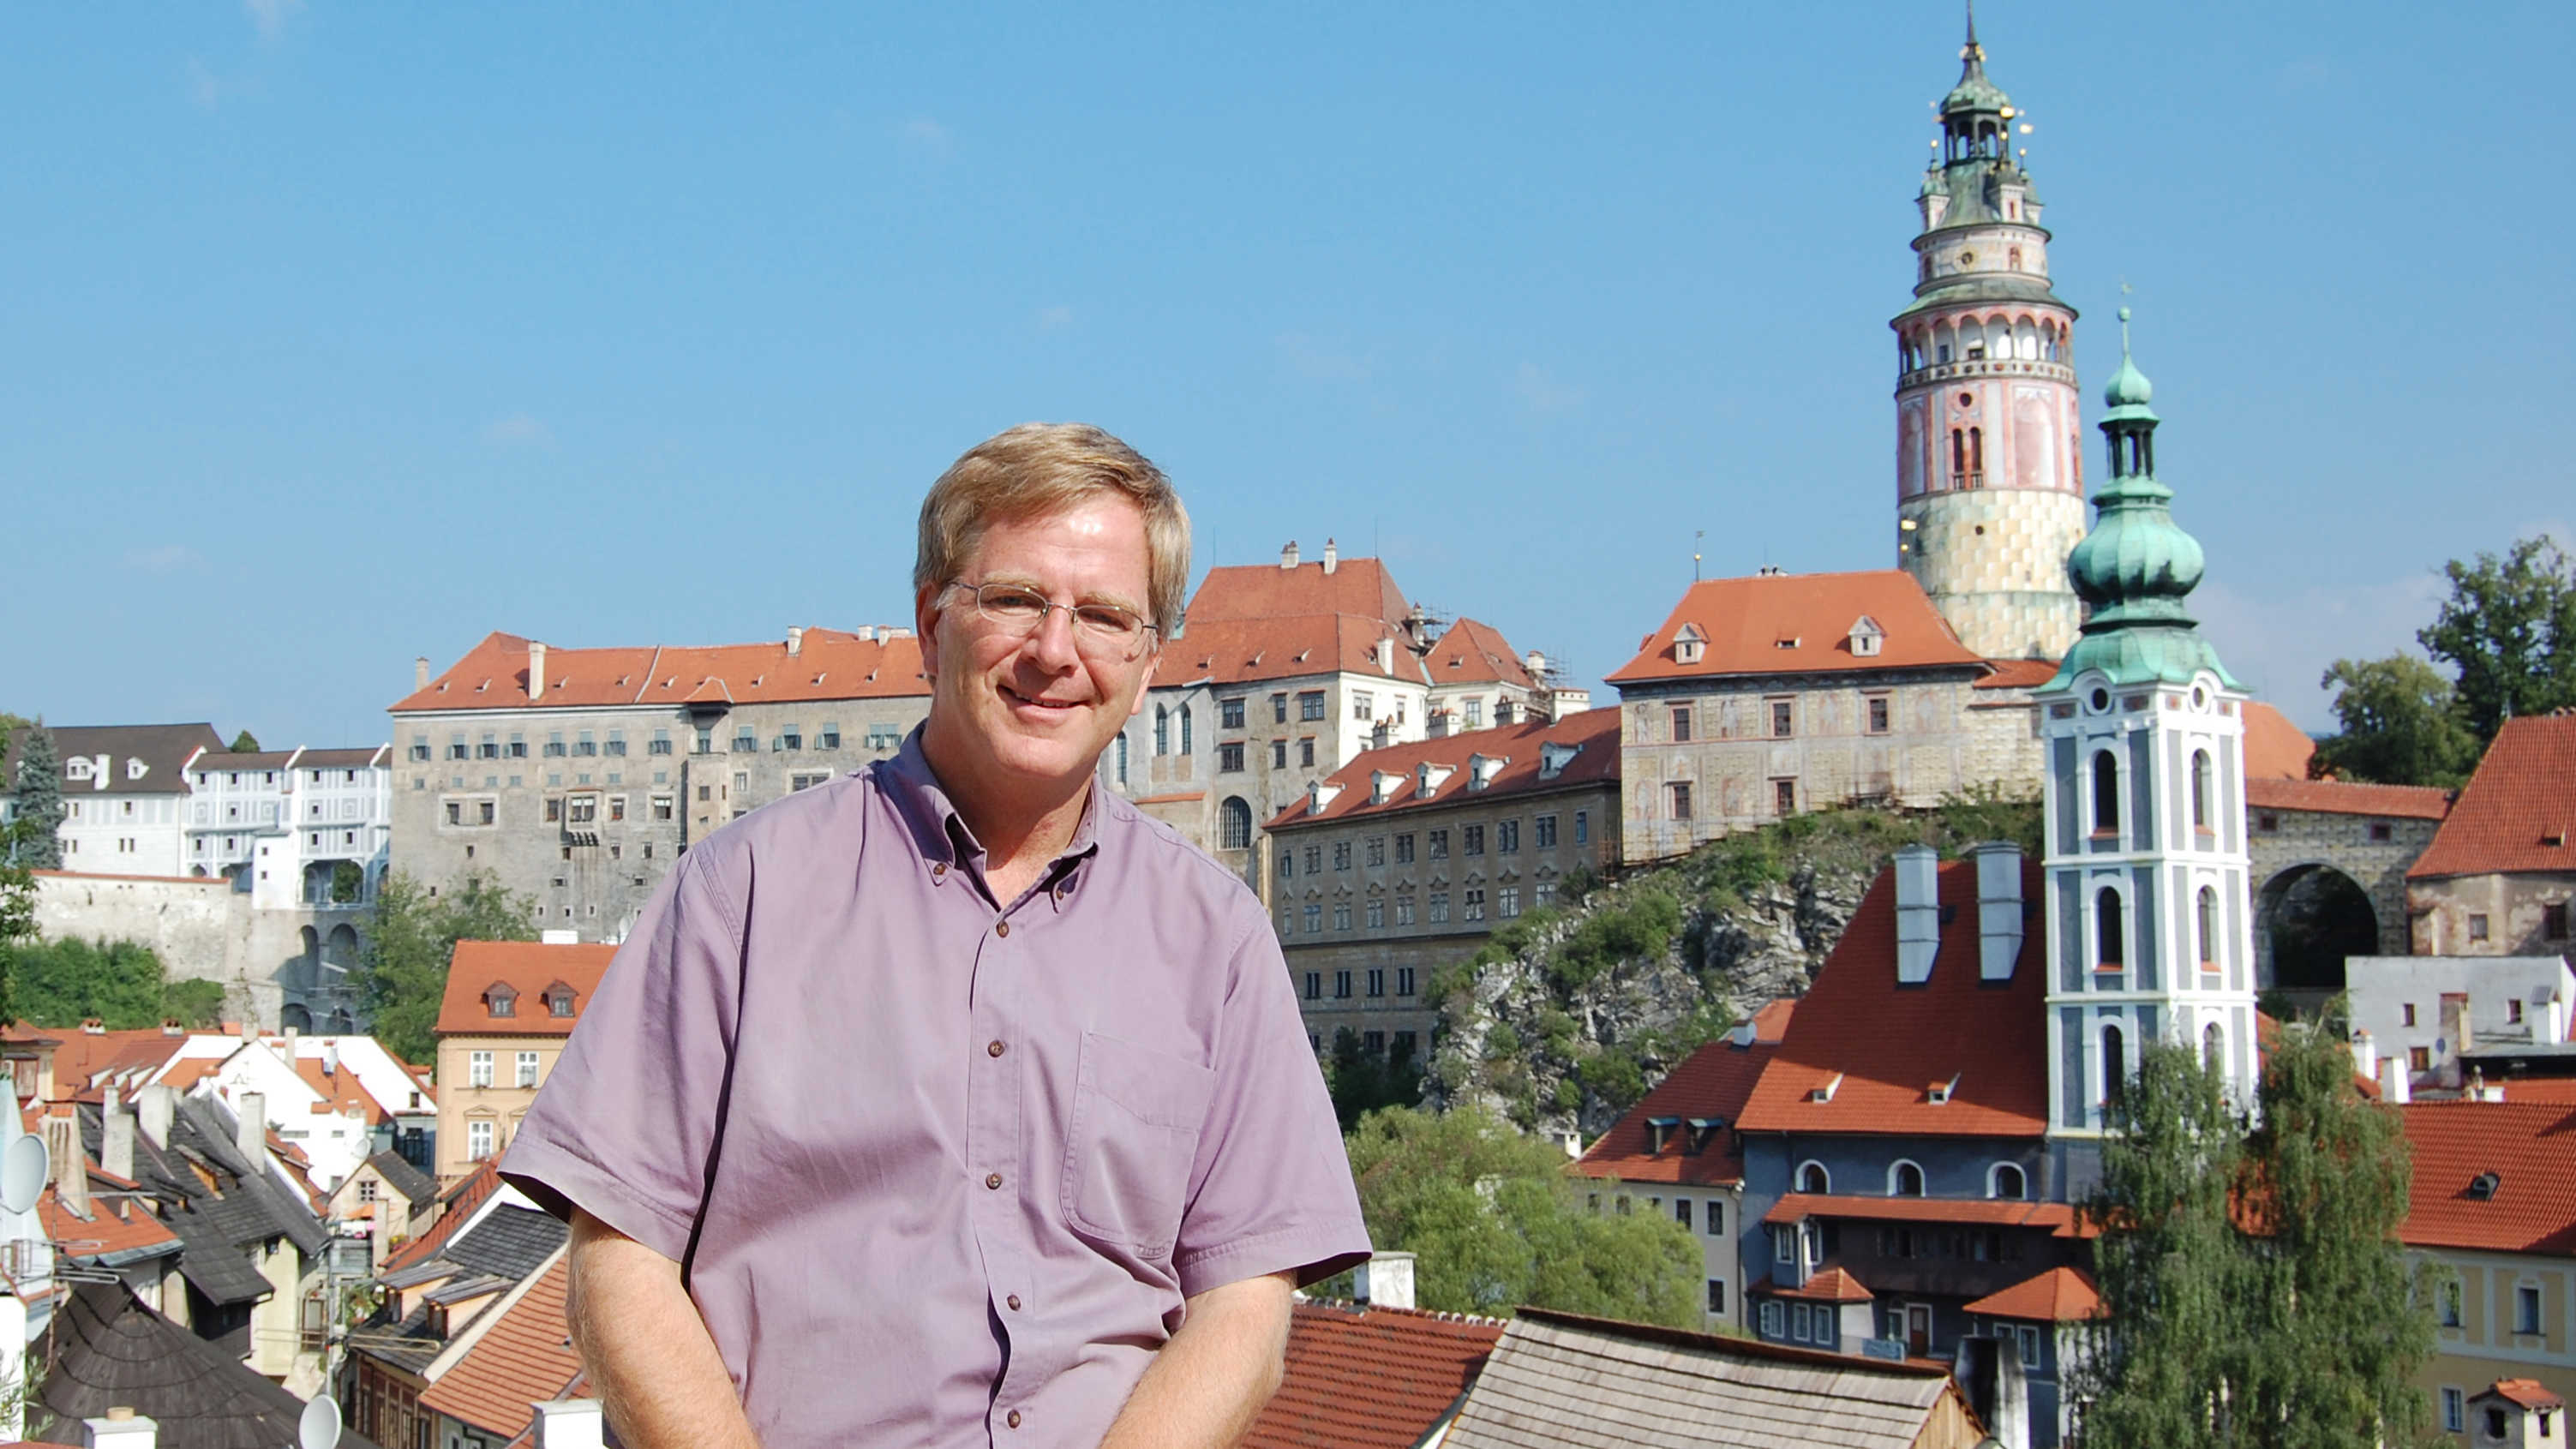 Rick Steves in Cesky Krumlov, Czech Republic